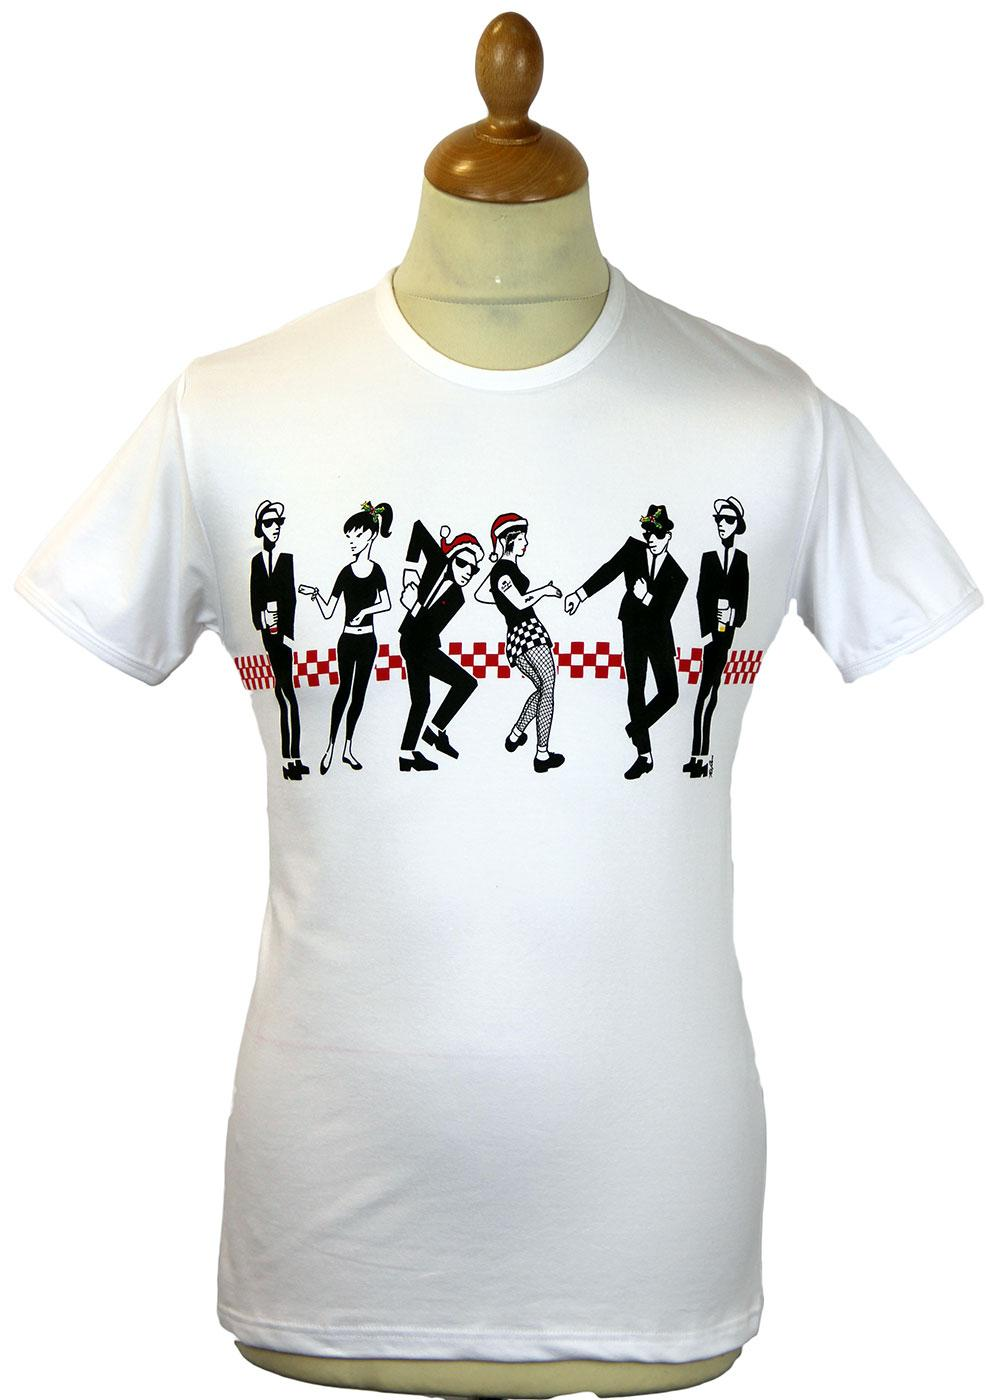 Skanking Christmas Party Ltd Edition S/S Mod Tee